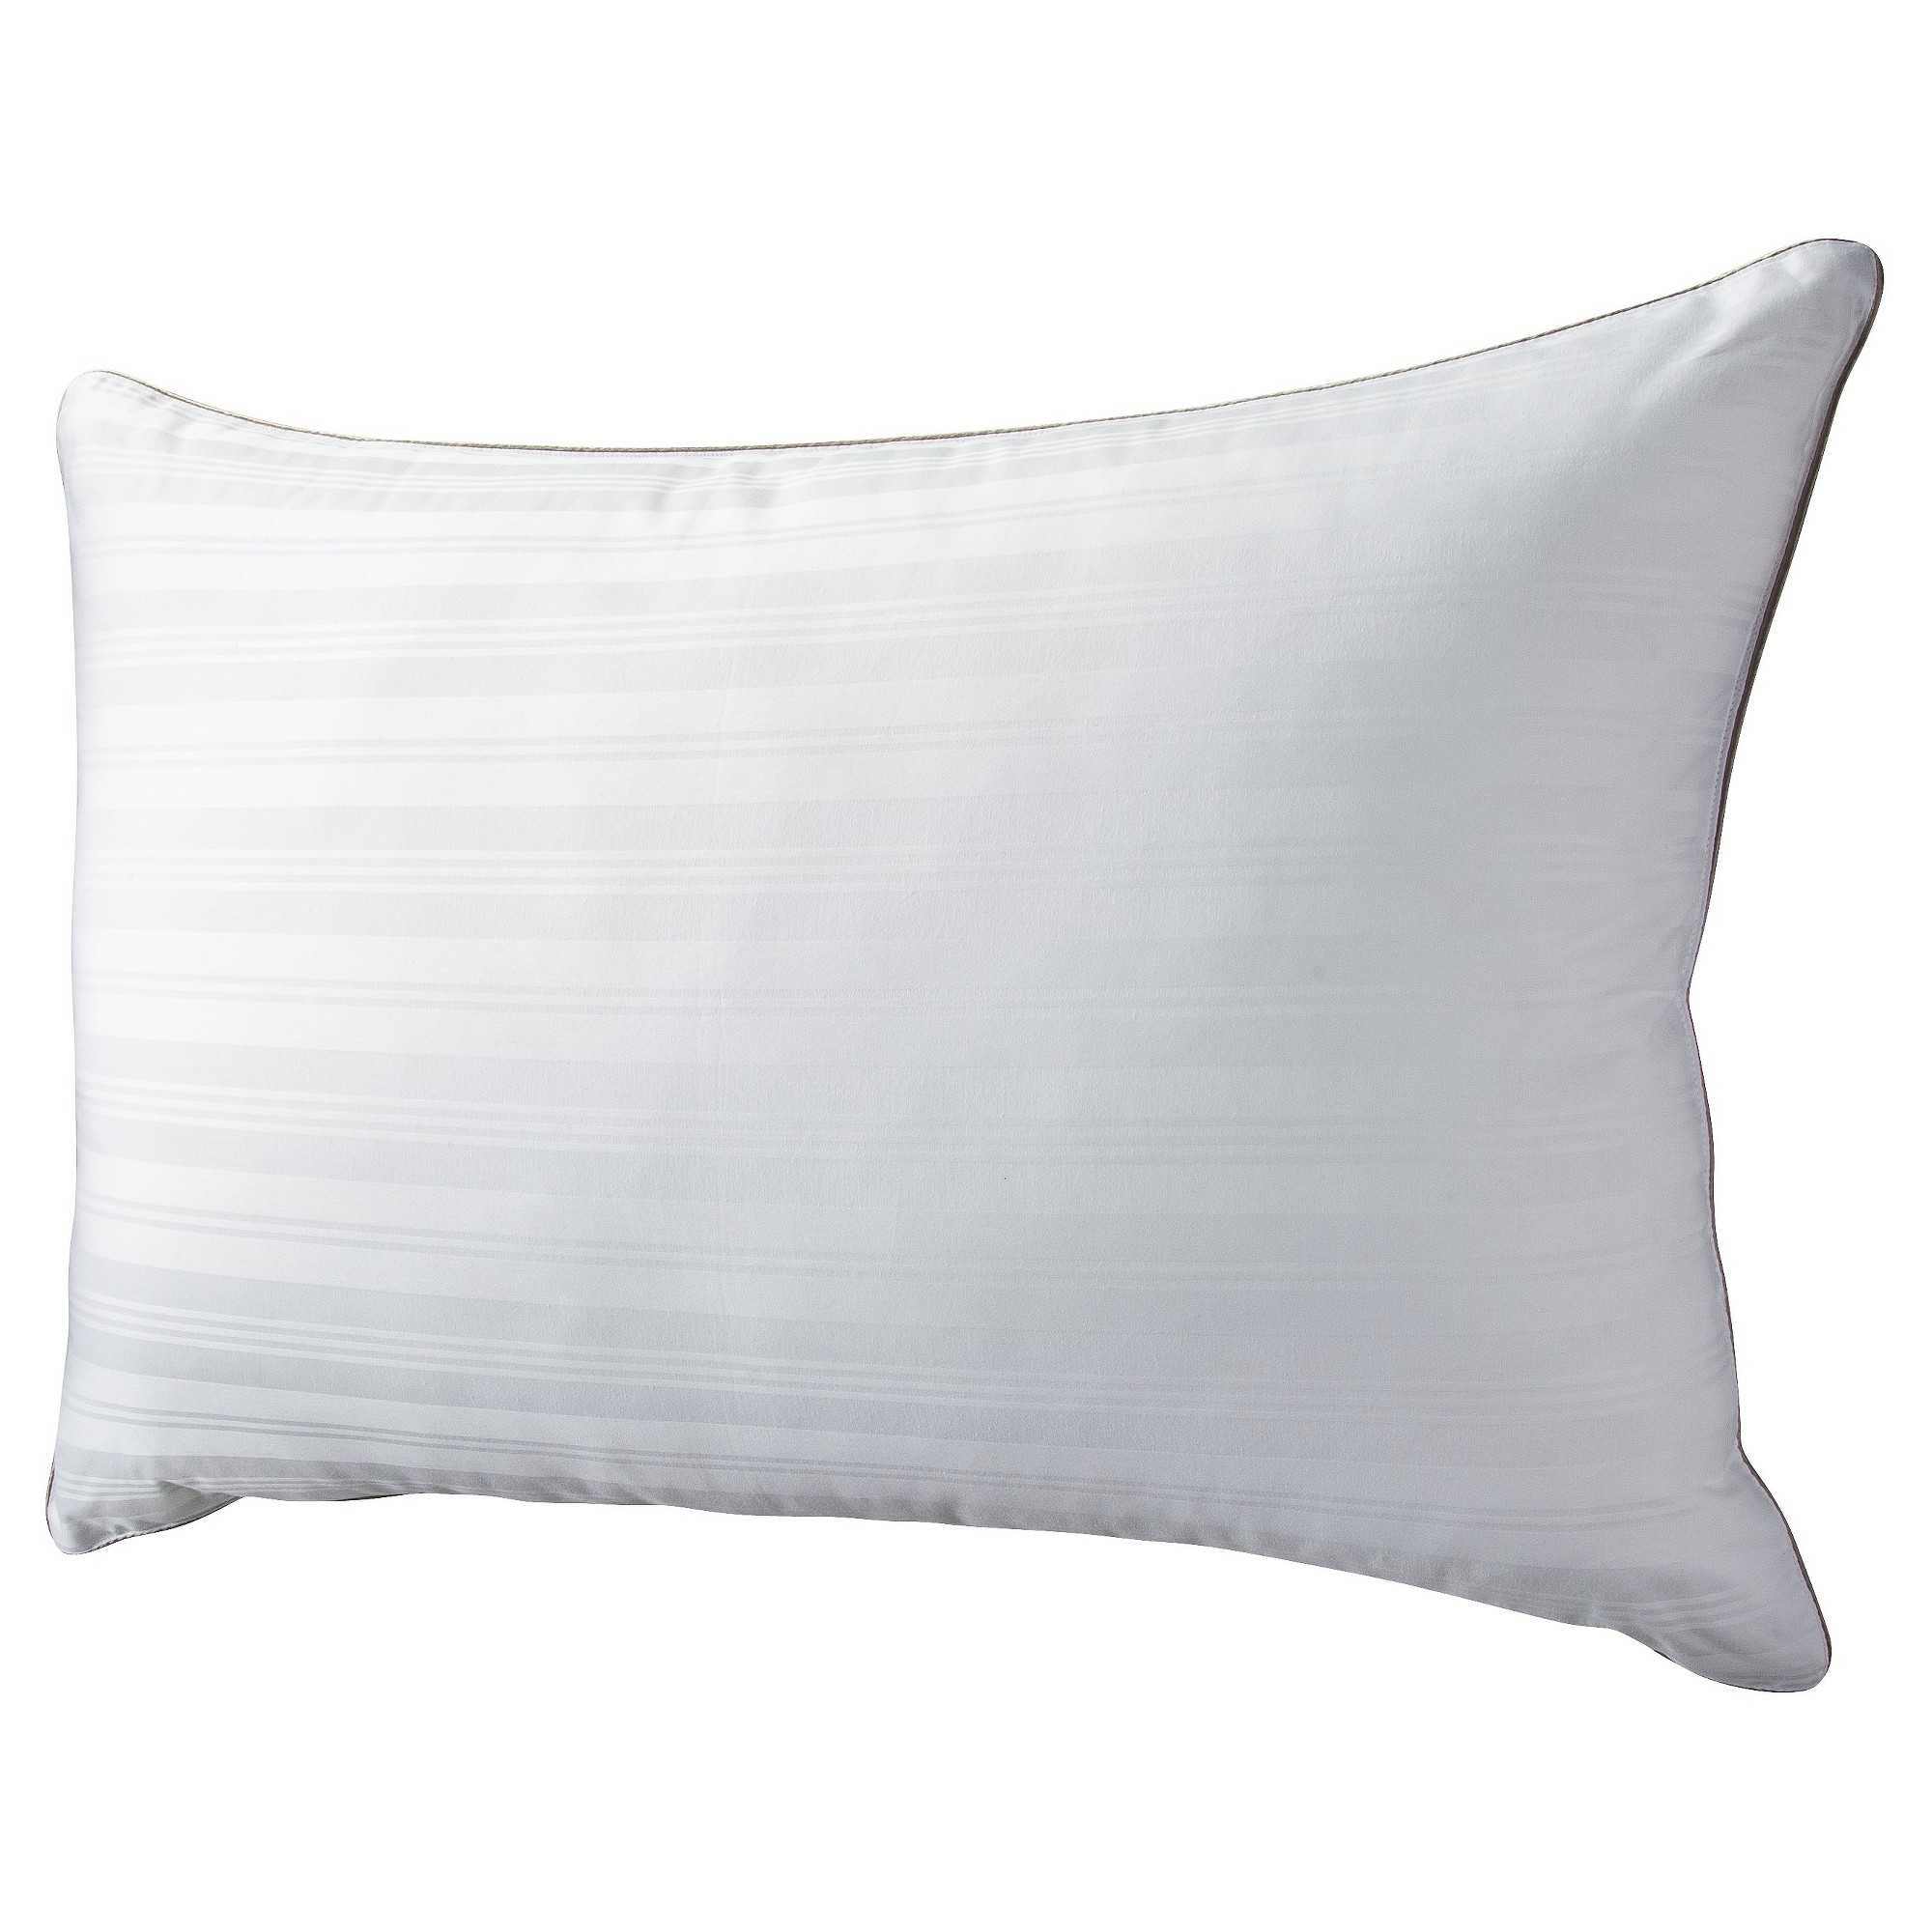 quality high oversized super dsc down alternative pillow comforter fits top beds ivory